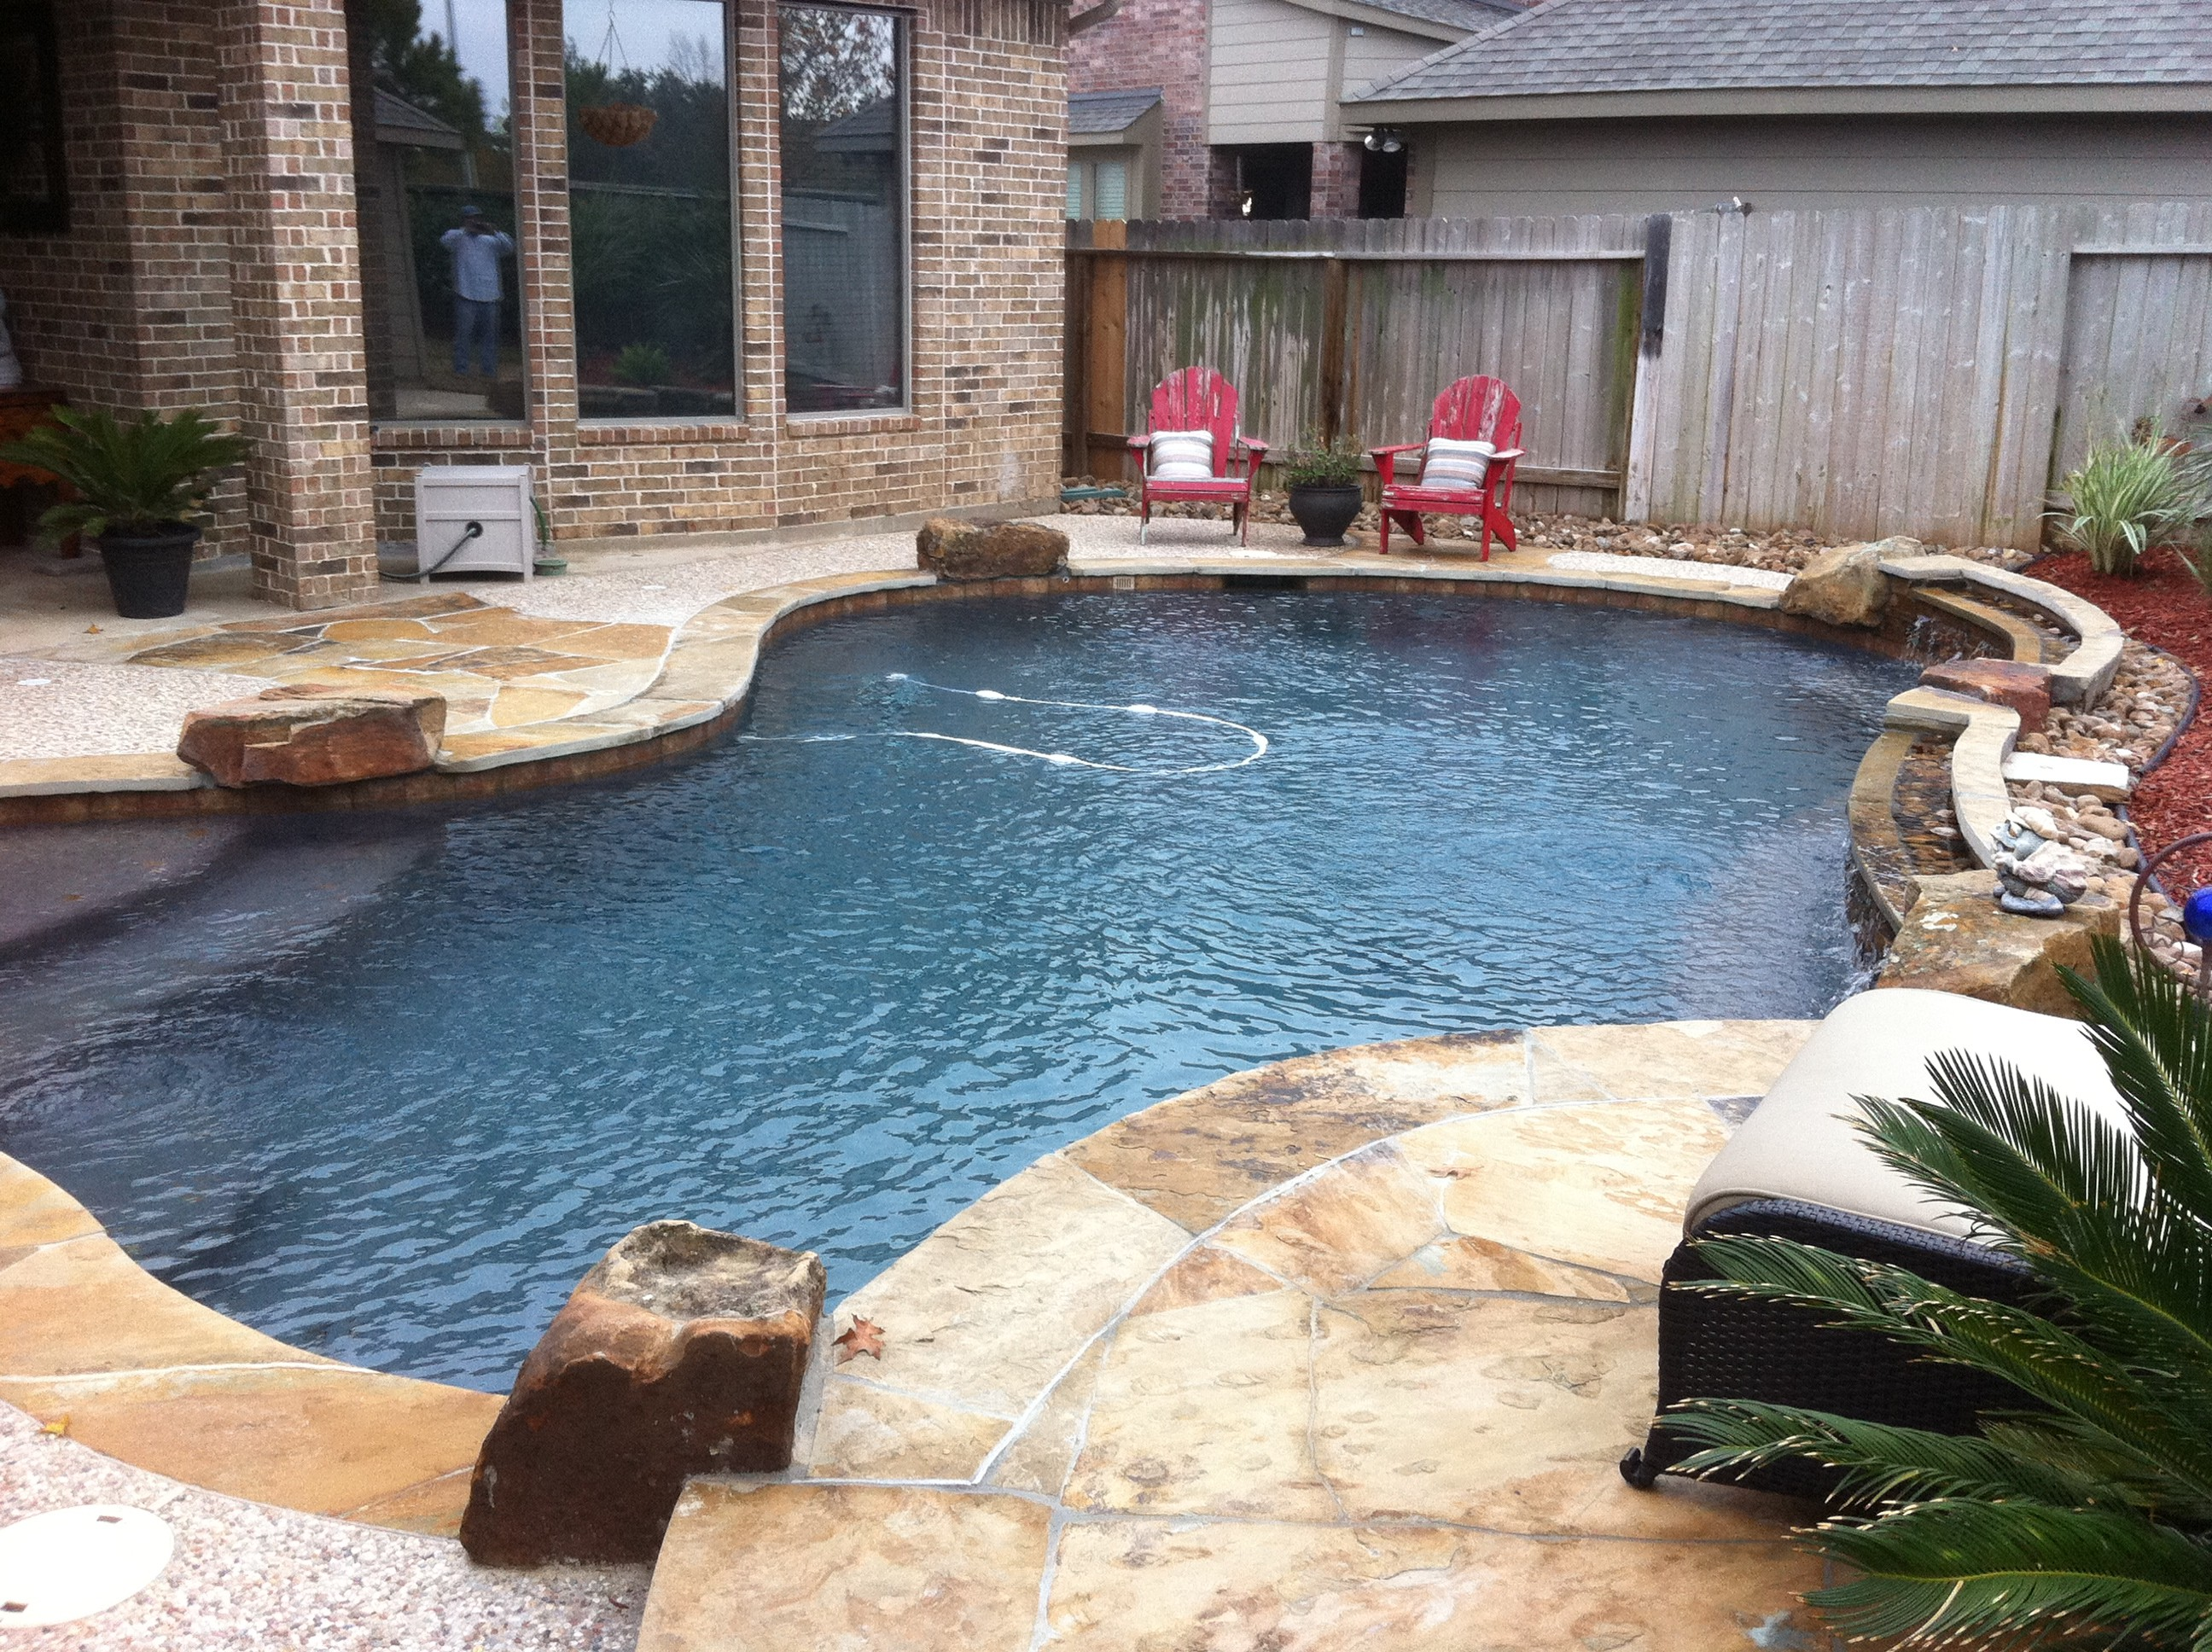 Tomball pool designs katy kingwood cypress spring for Pool design katy